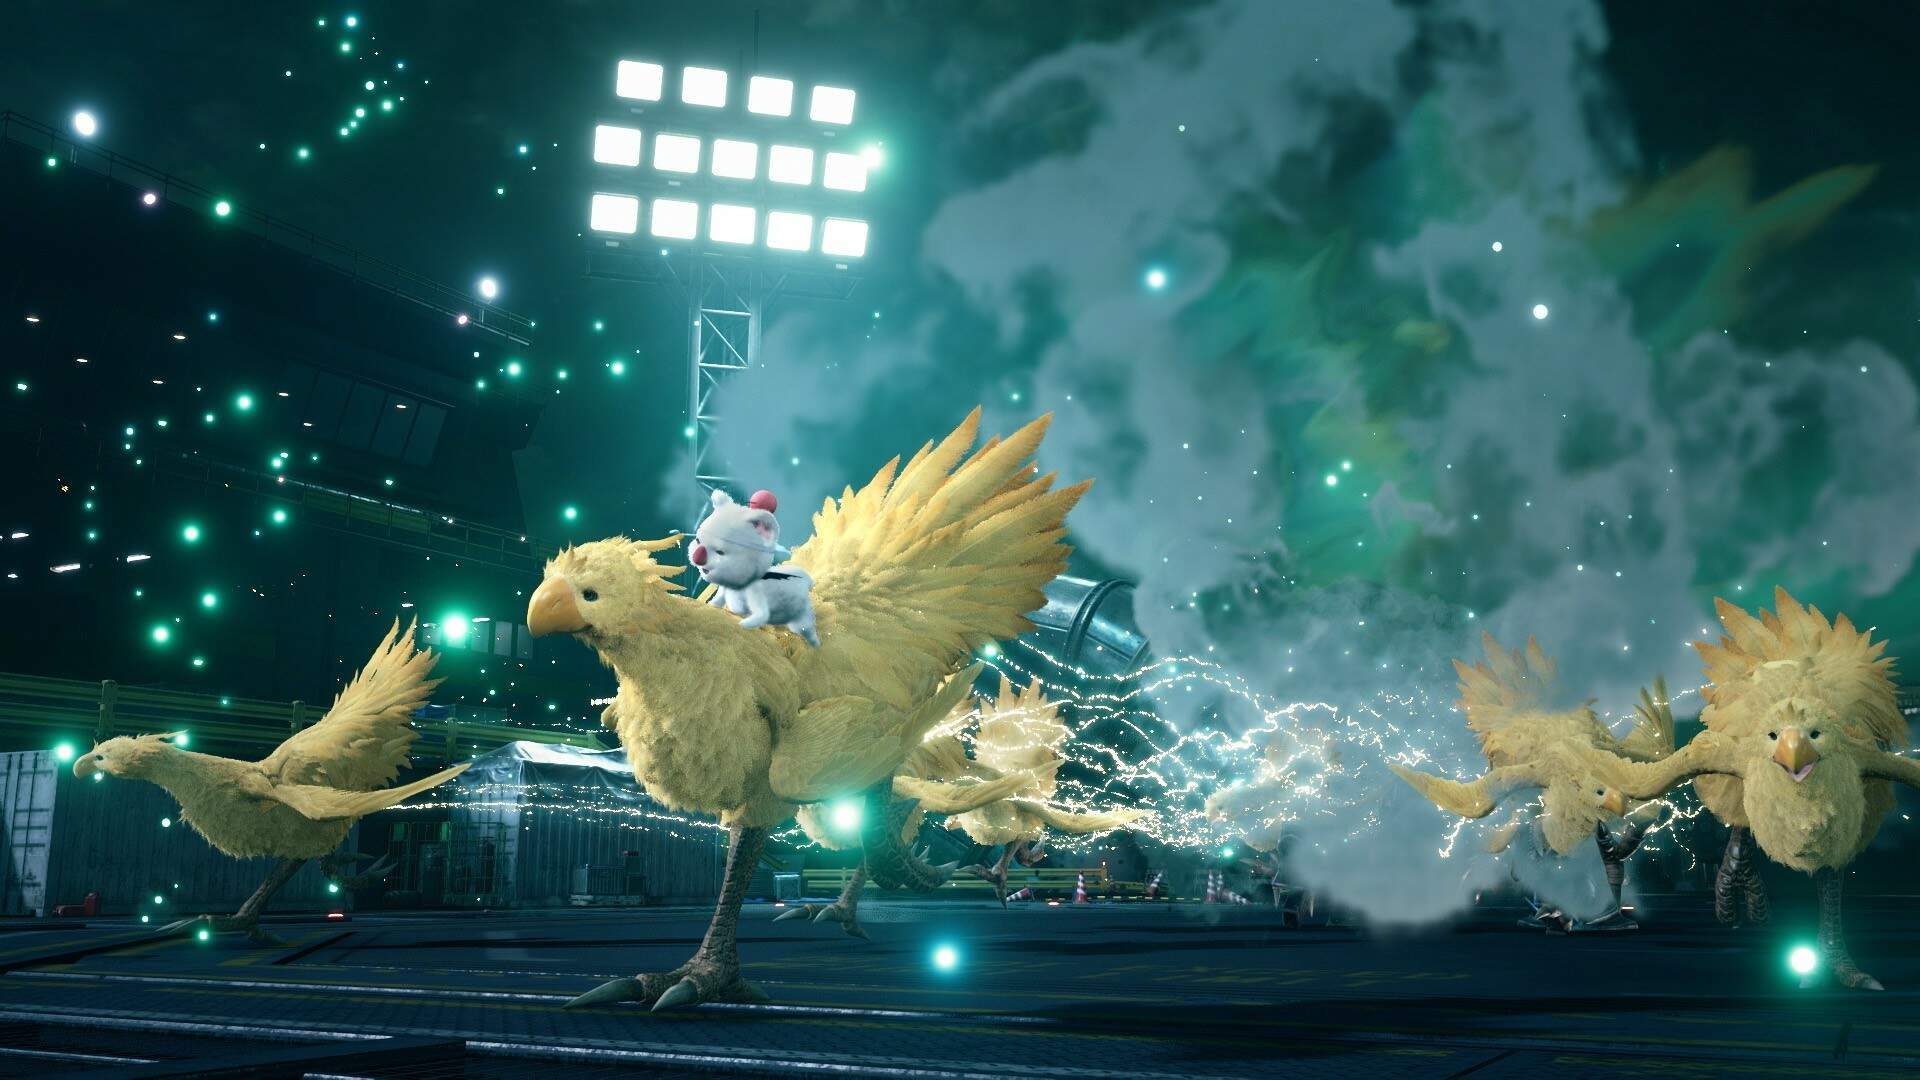 Here's Final Fantasy 7's Weird Chocobo Chick in Action